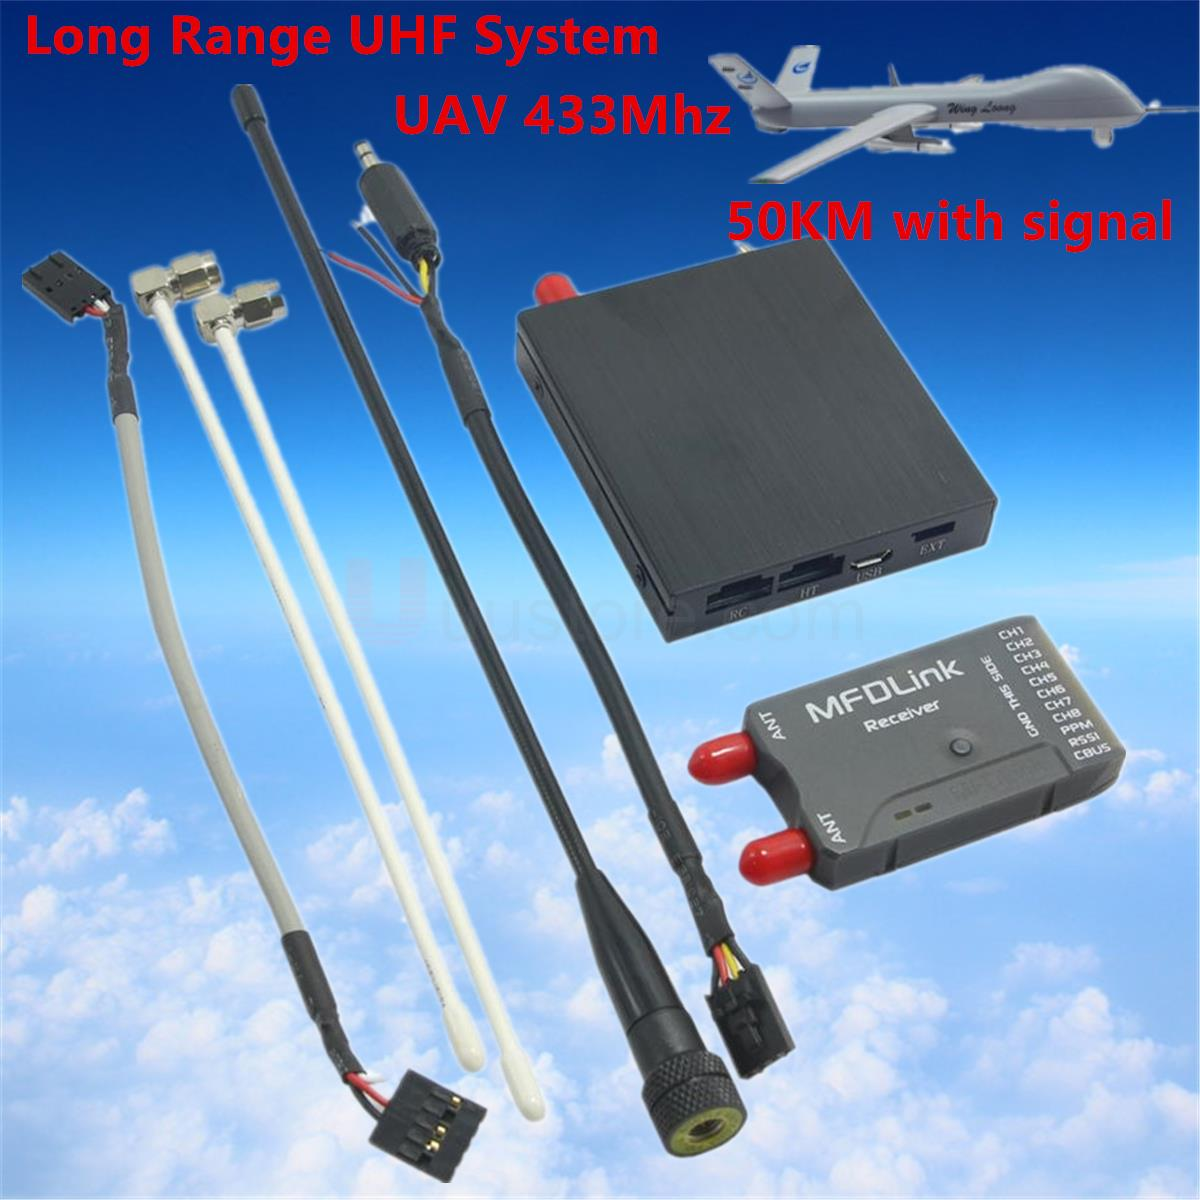 50KM Long Range MFDLink Rlink 433Mhz 16CH 1W RC FPV UHF System Transmitter w/8 Channel Receiver TX+RX Set For high fpv quality 50km long range mfdlink rlink 433mhz 16ch 1w fpv uhf system transmitter w 8 channel receiver tx rx set